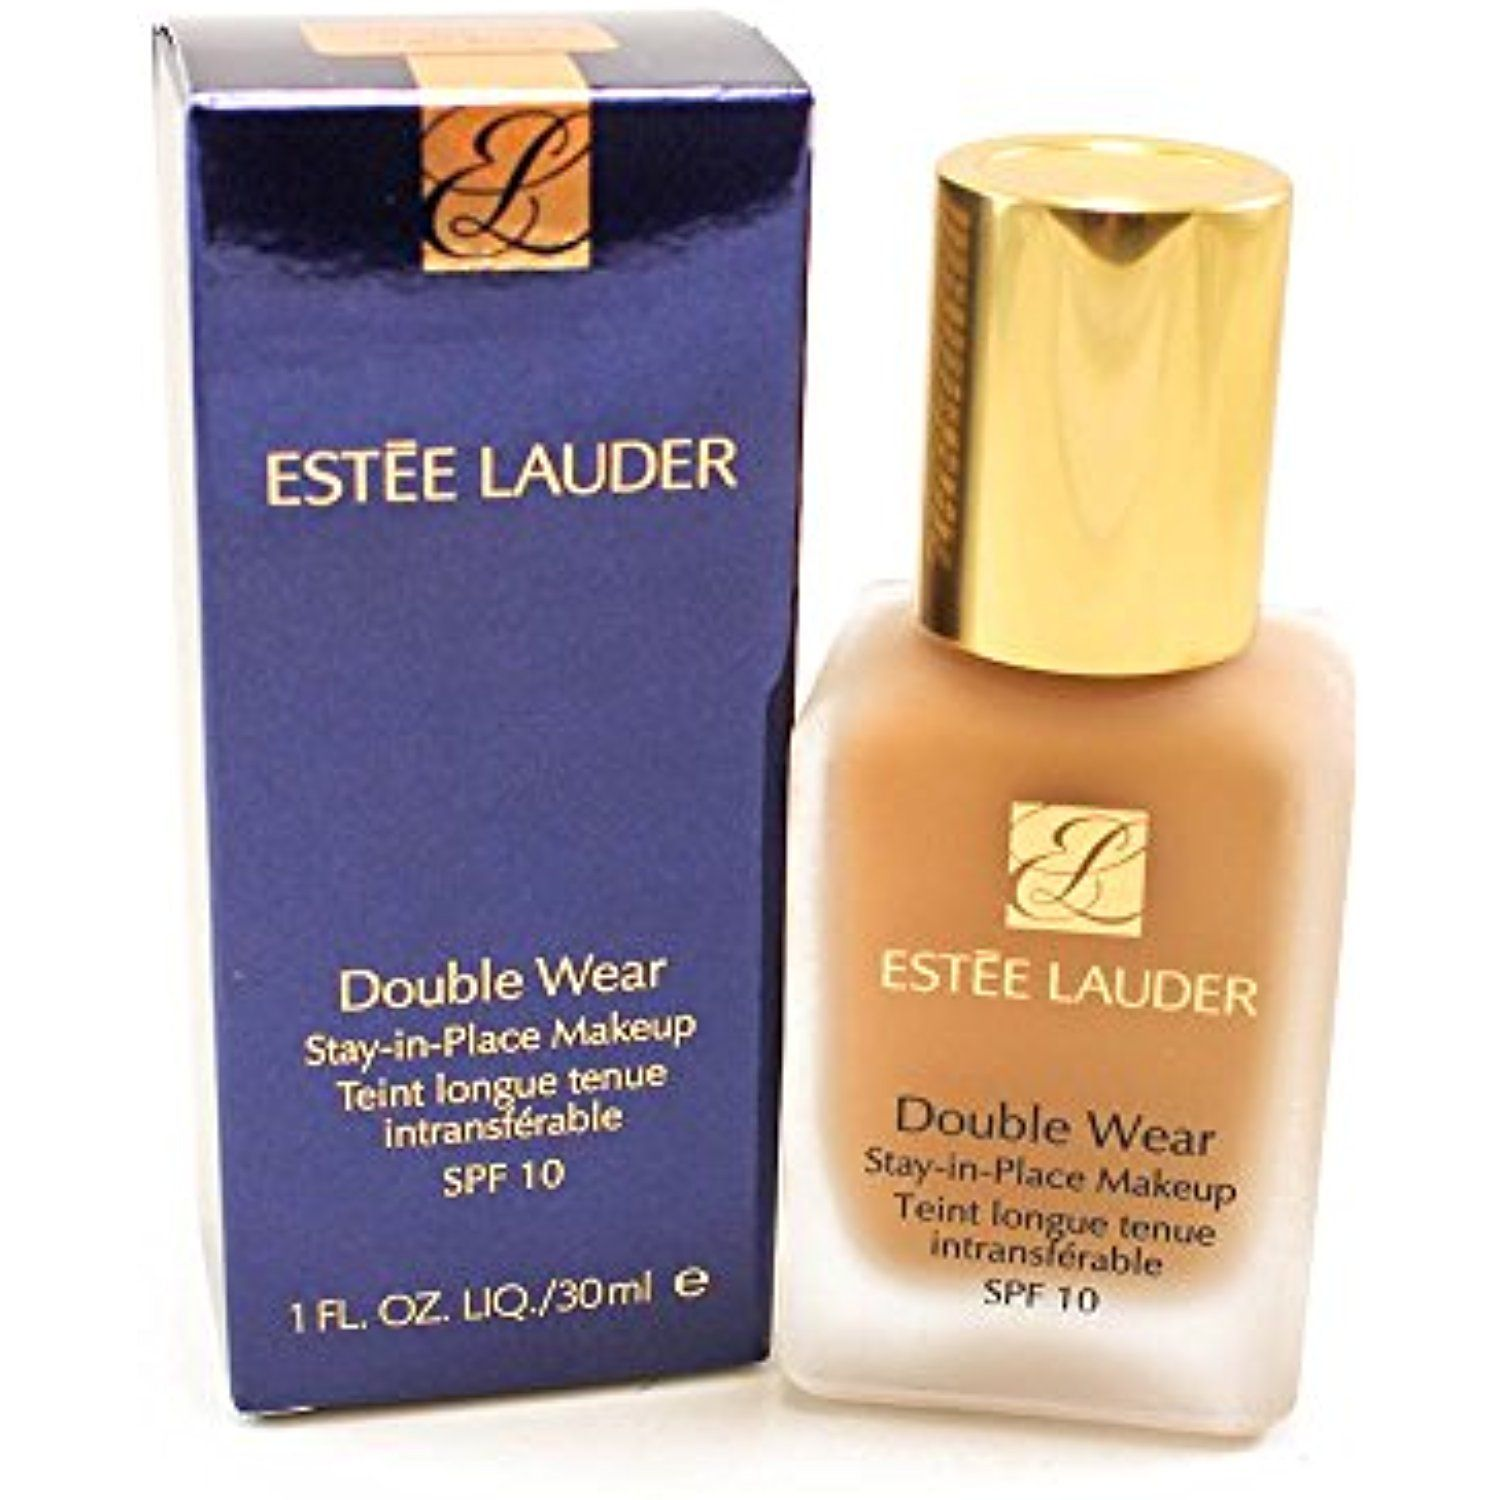 Estee Lauder Double Wear StayinPlace Makeup Spf 10 for